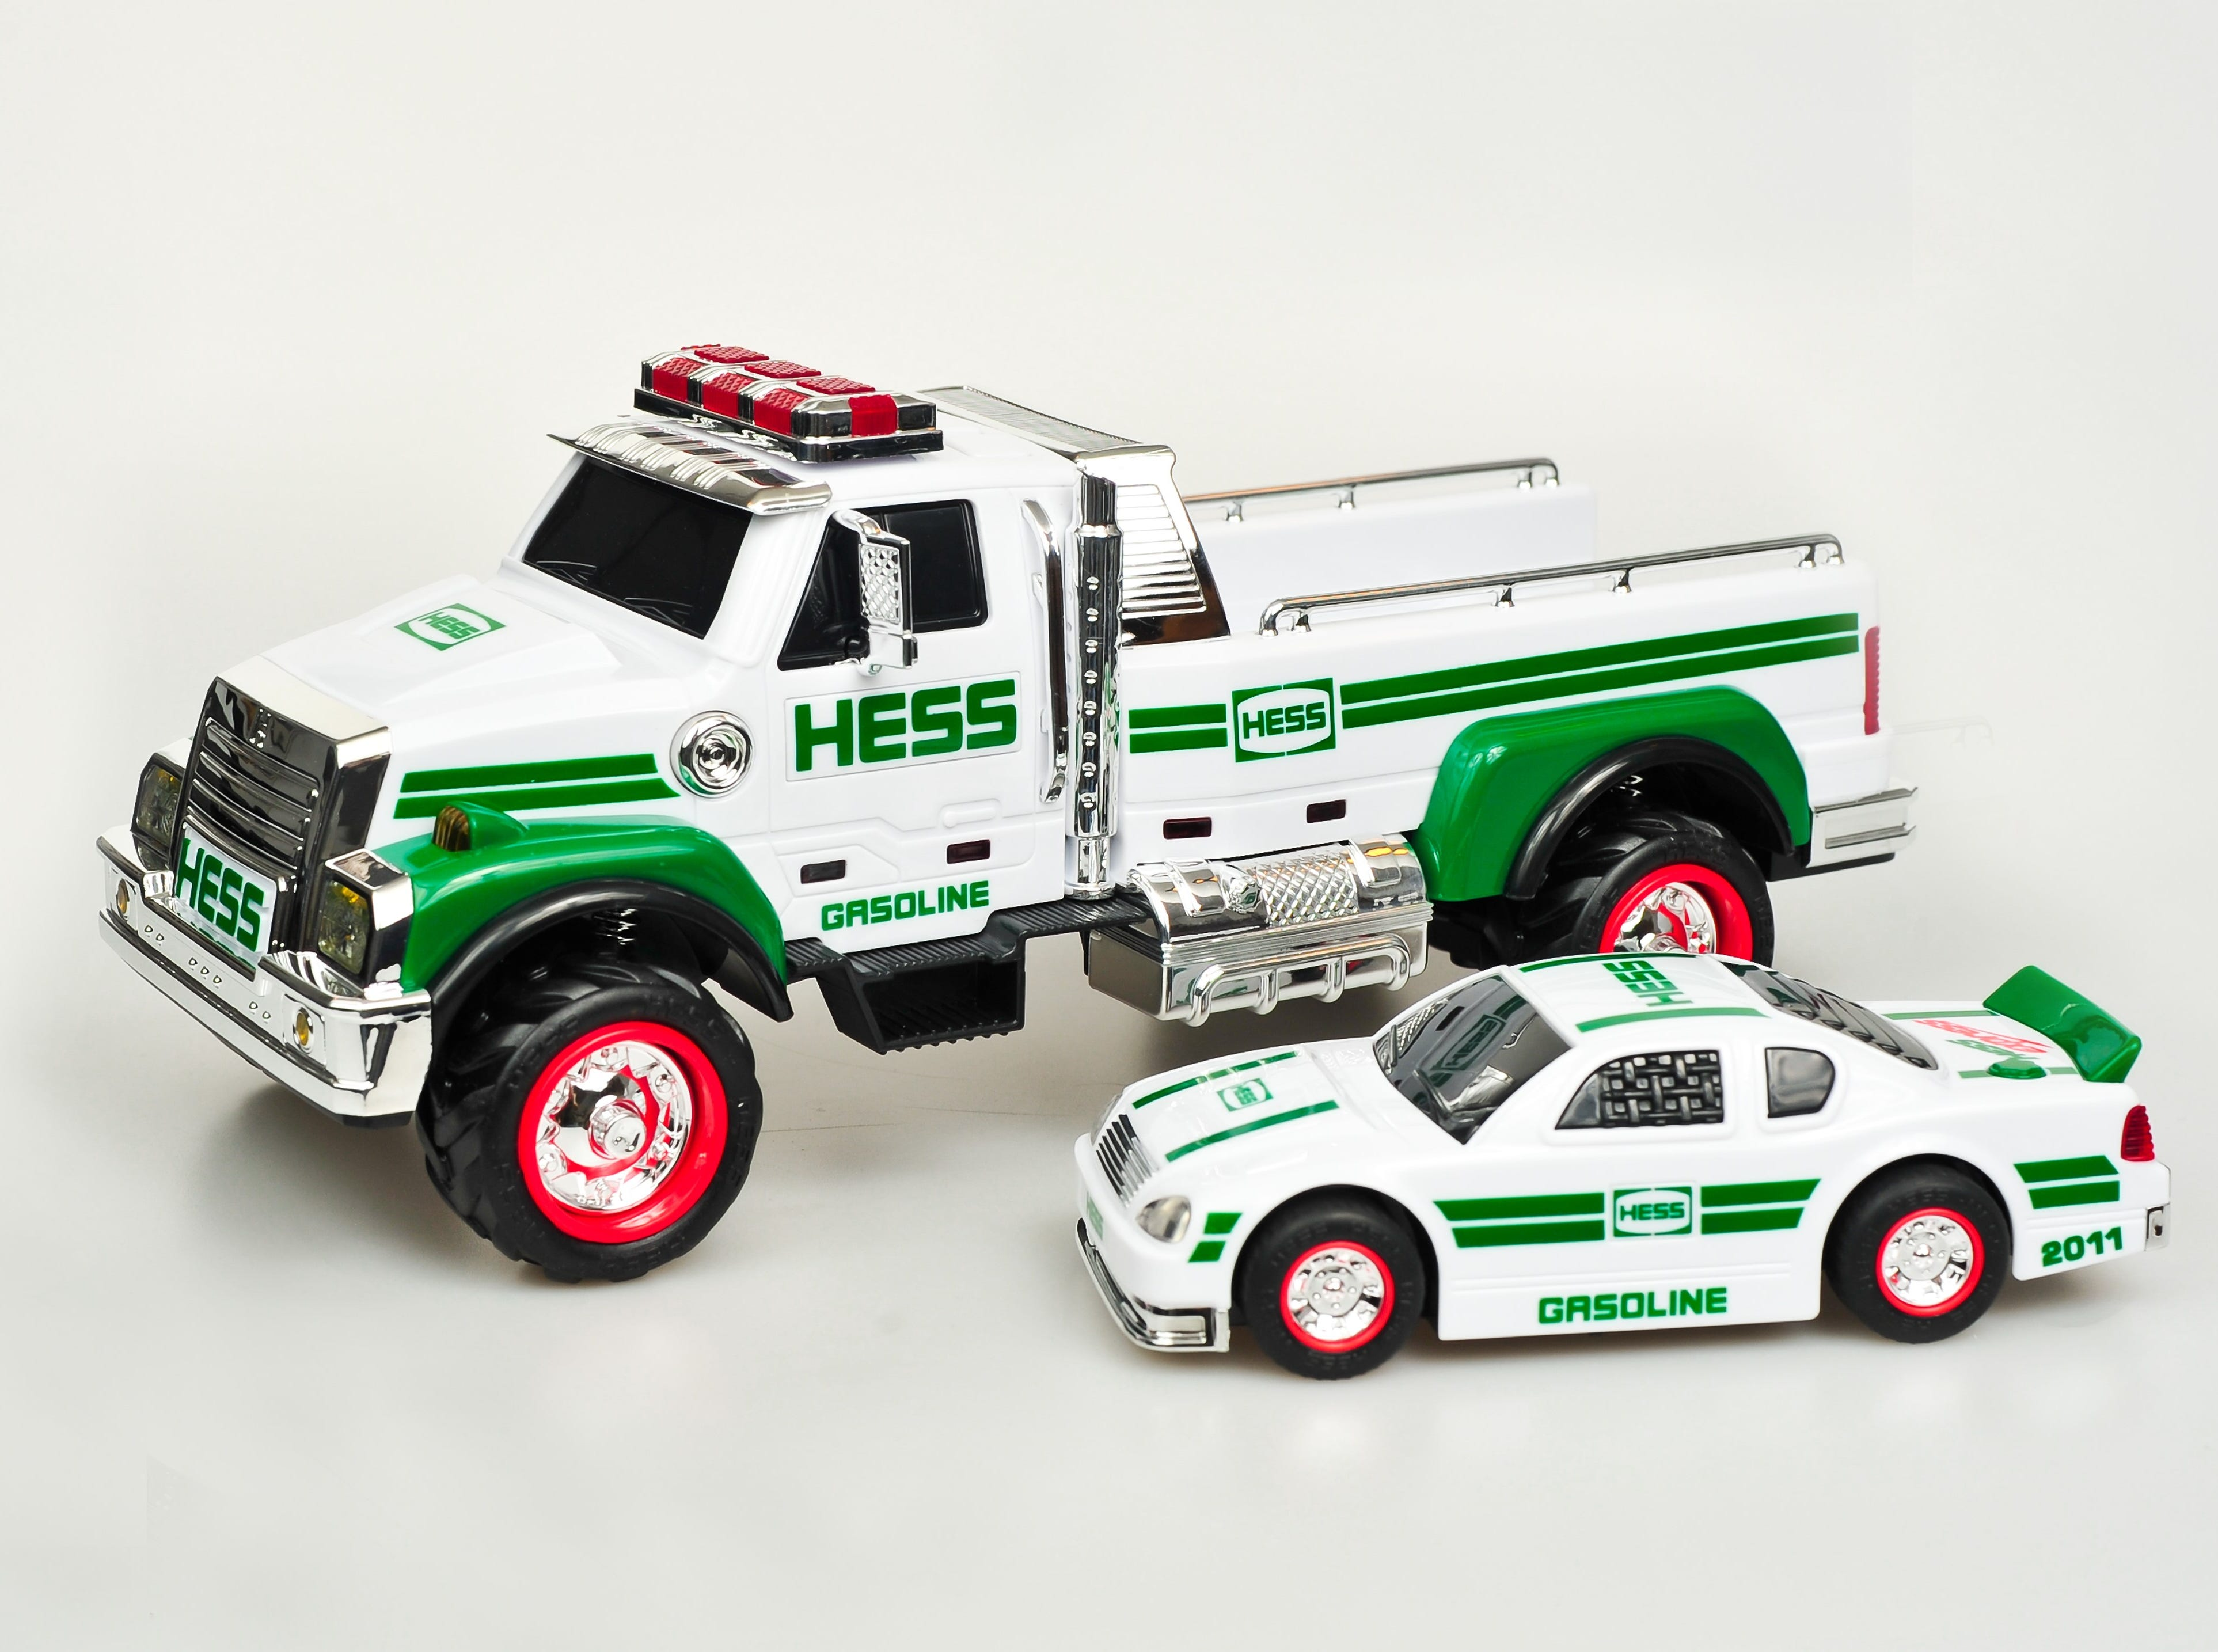 The 2011 Hess toy truck.